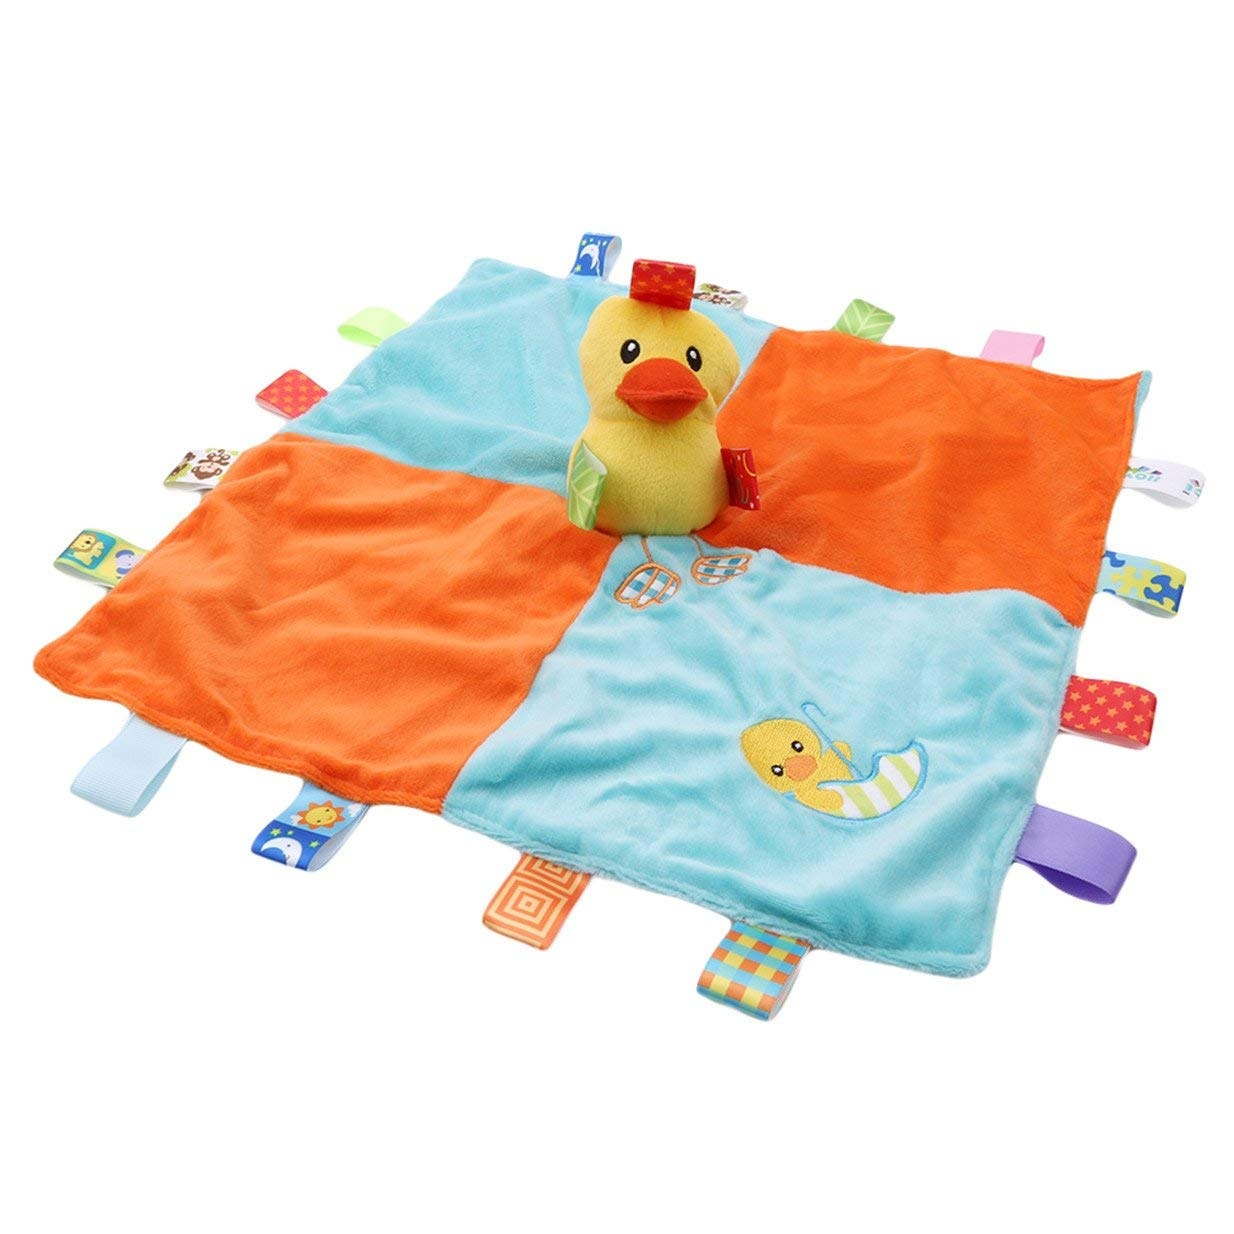 for Baby Girls Boys Best Gifts Plush Toys EJY Baby Tag Taggy Blanket Security Comforter Blankets with Soft Plush Duck